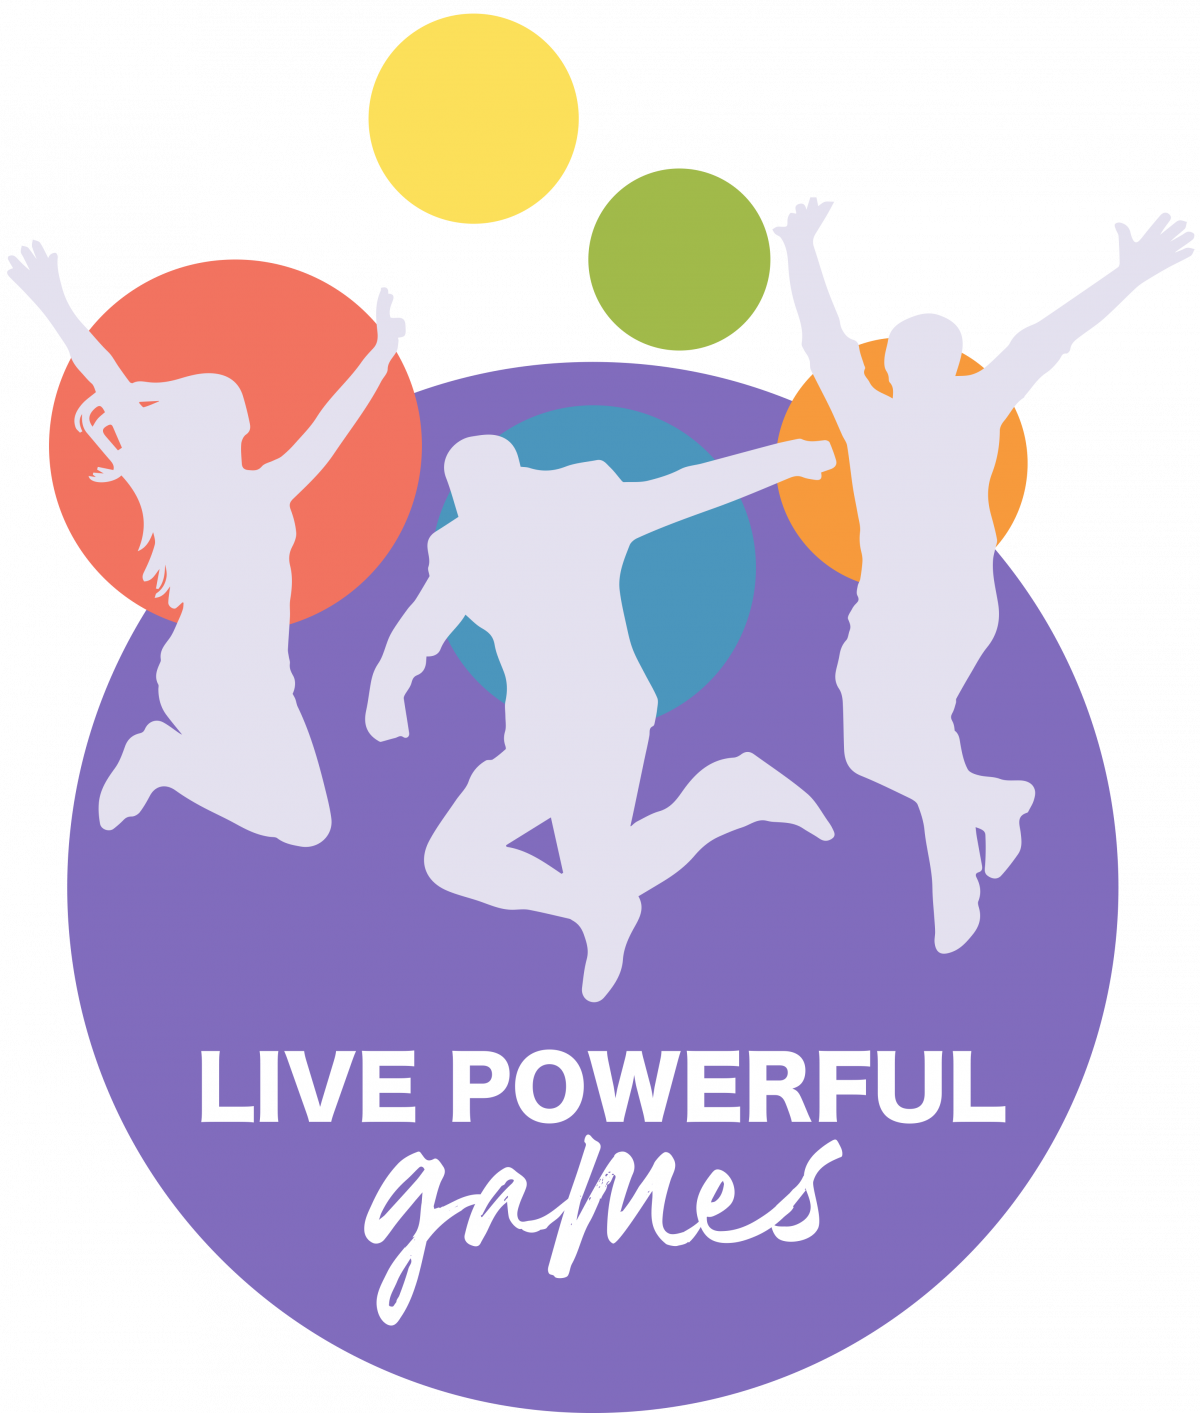 Live Powerful Games